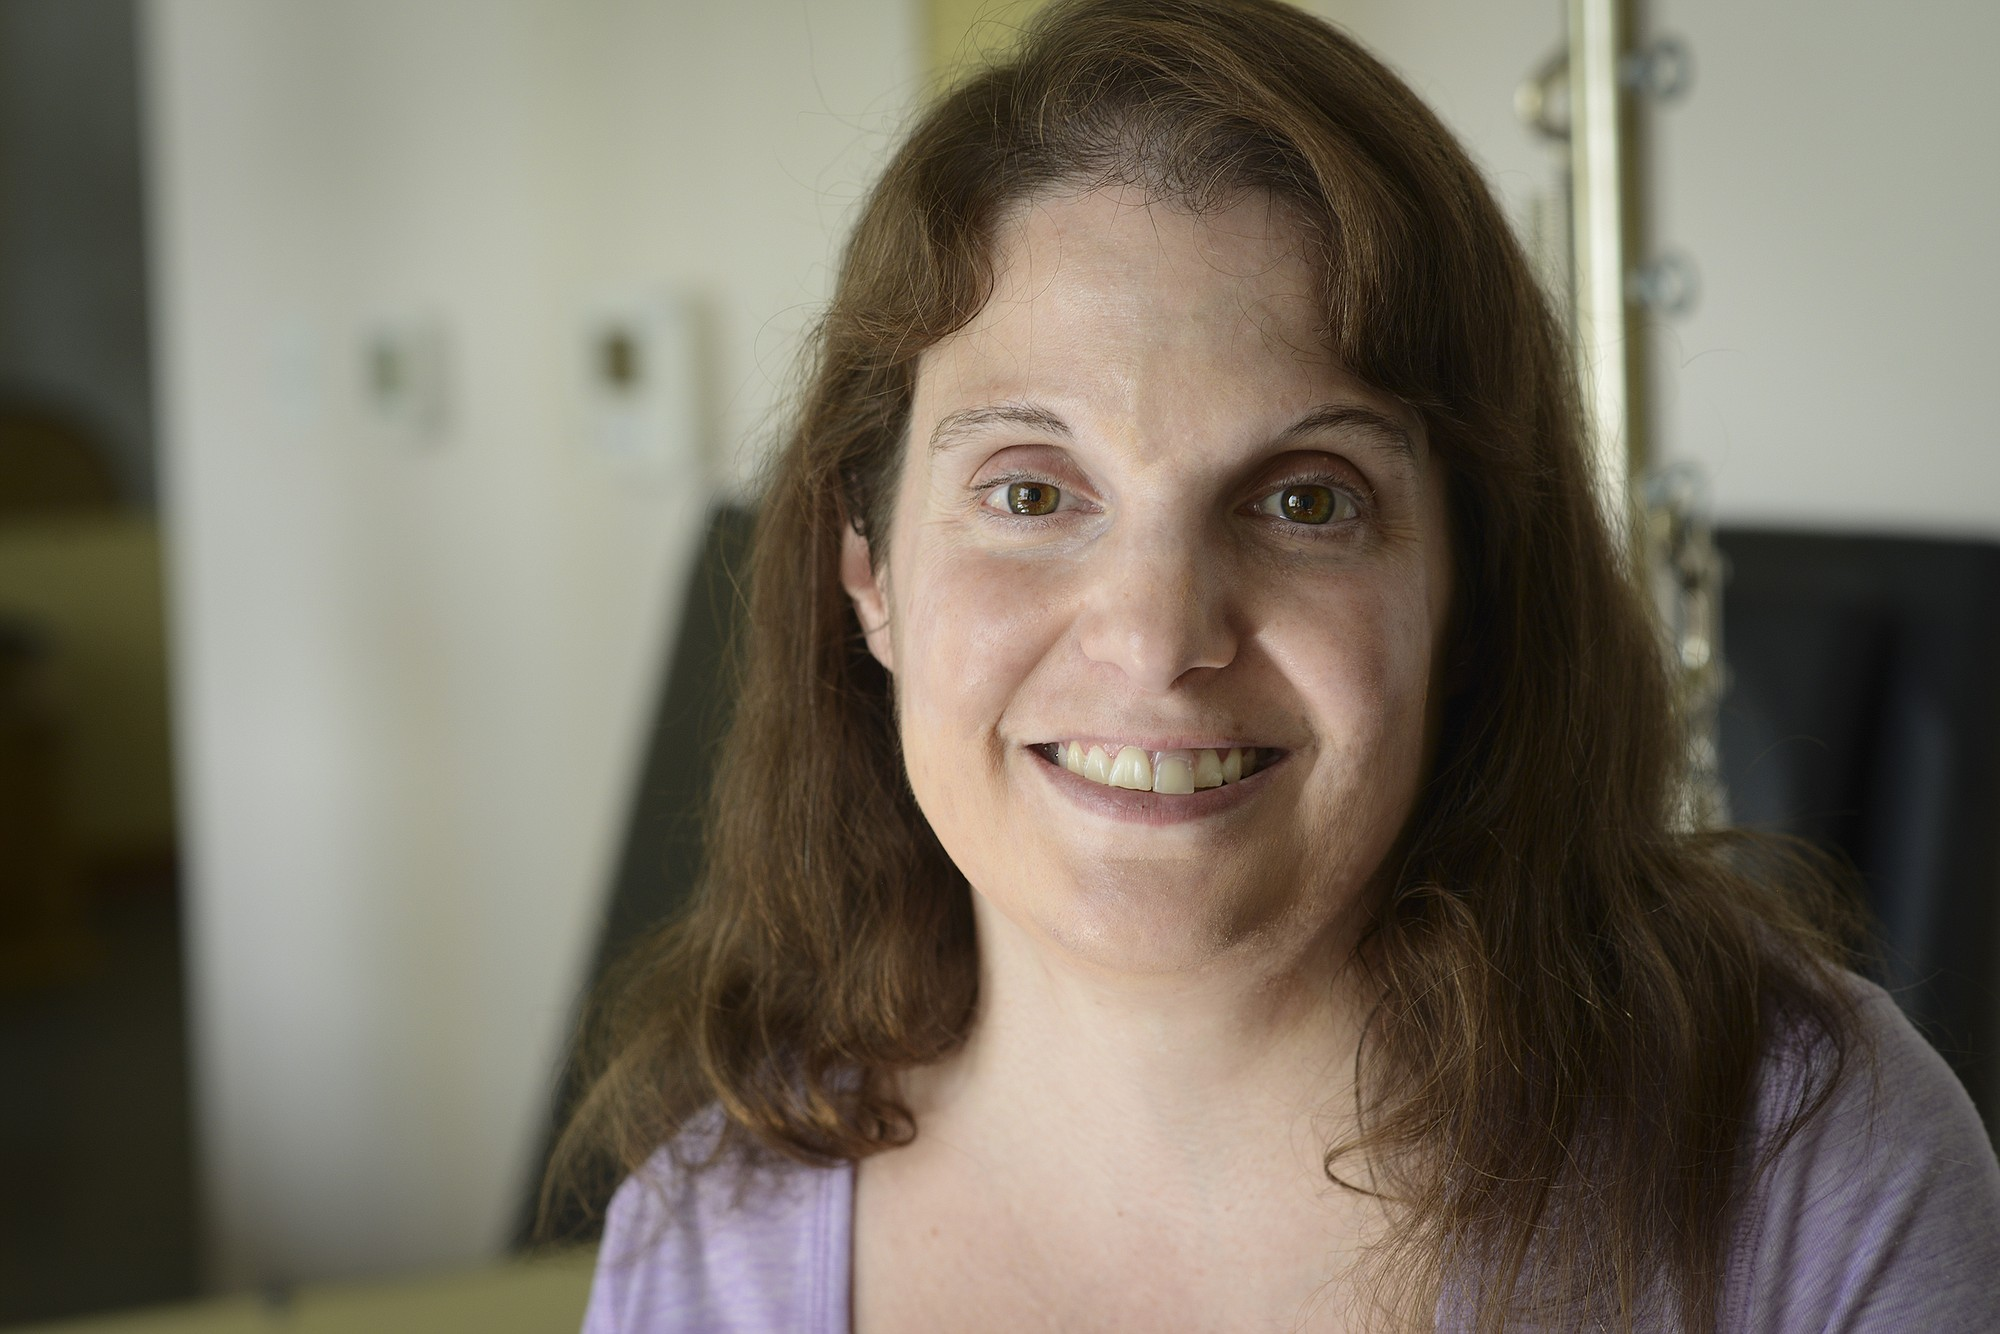 Laura Kotsovos, 39, is training to be a Pilates instructor, despite having cerebral palsy that affects the right side of her body.